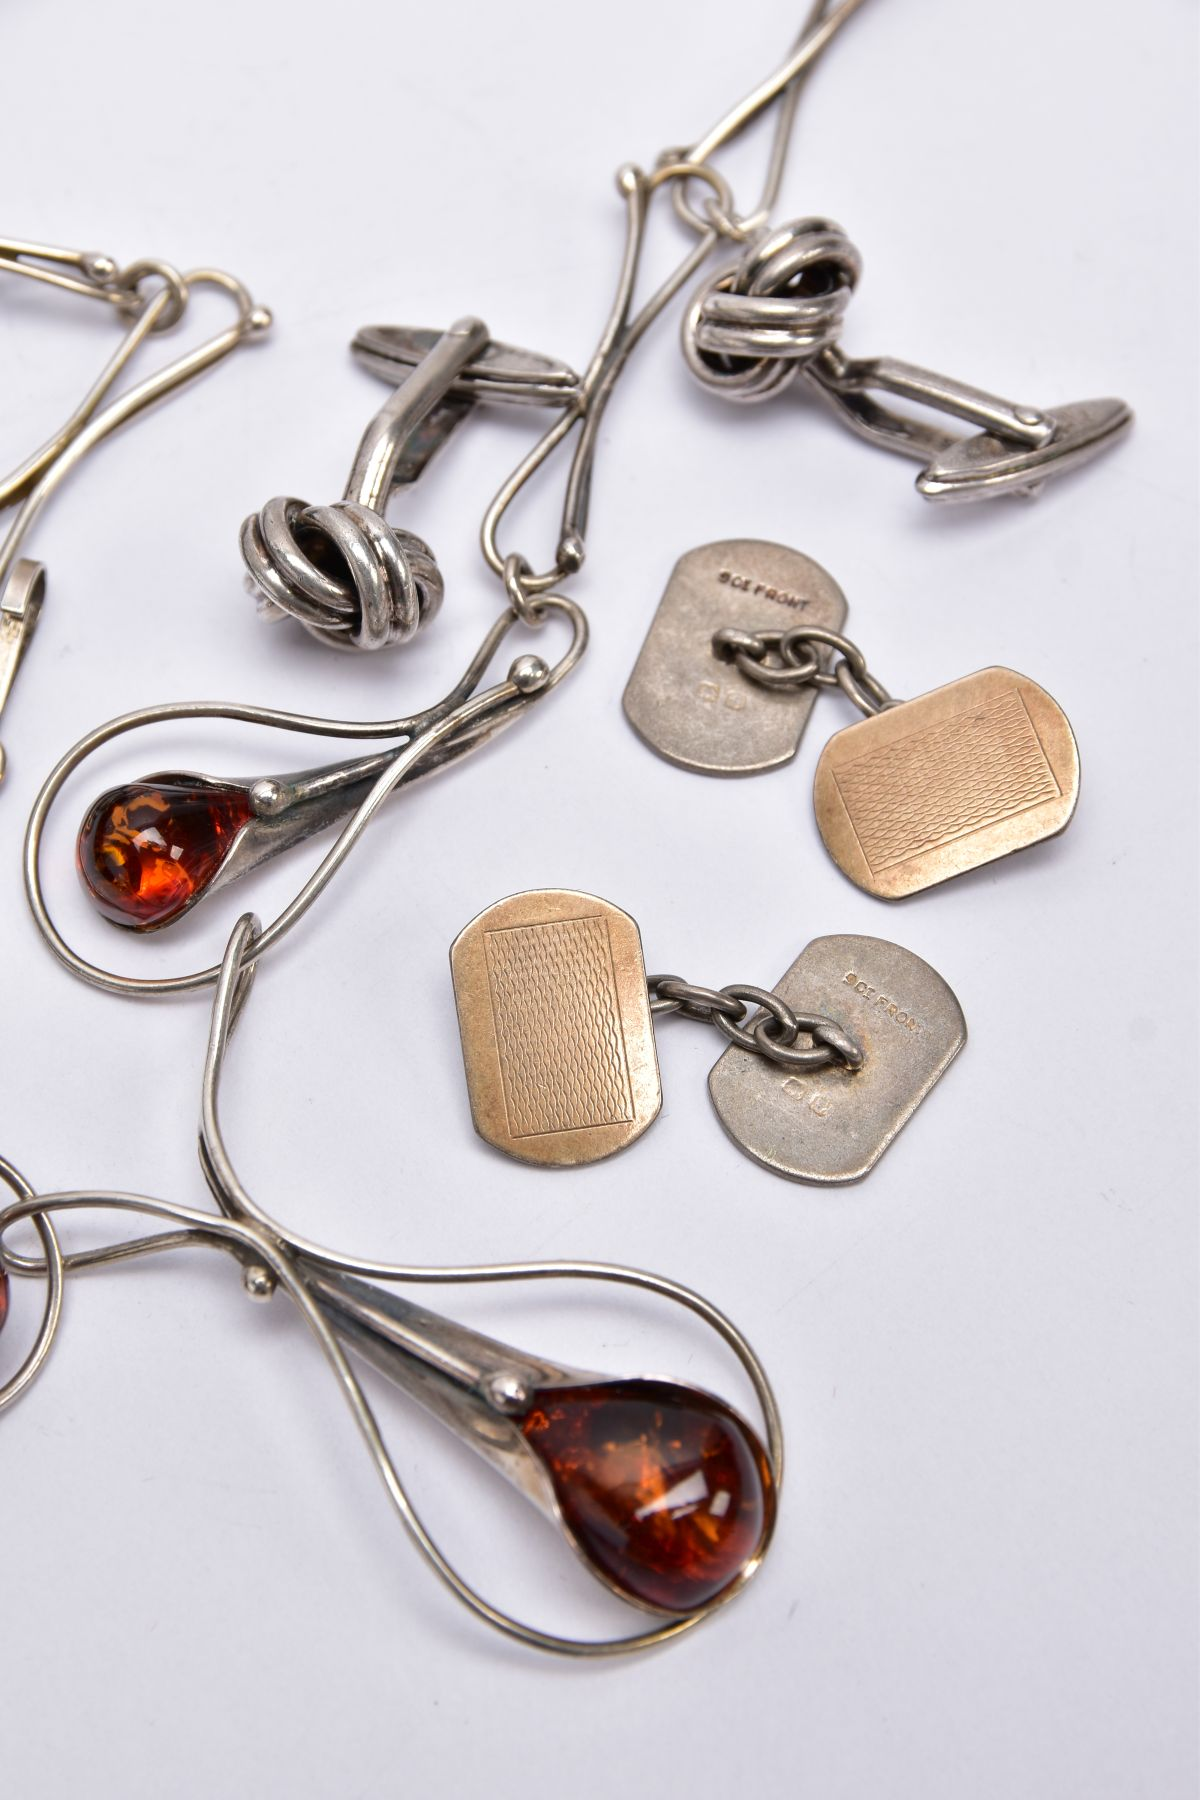 A SILVER AMBER NECKLACE, SILVER CUFFLINKS, STICK PIN, CUFFLINKS, ETC, the silver necklet designed - Image 4 of 5